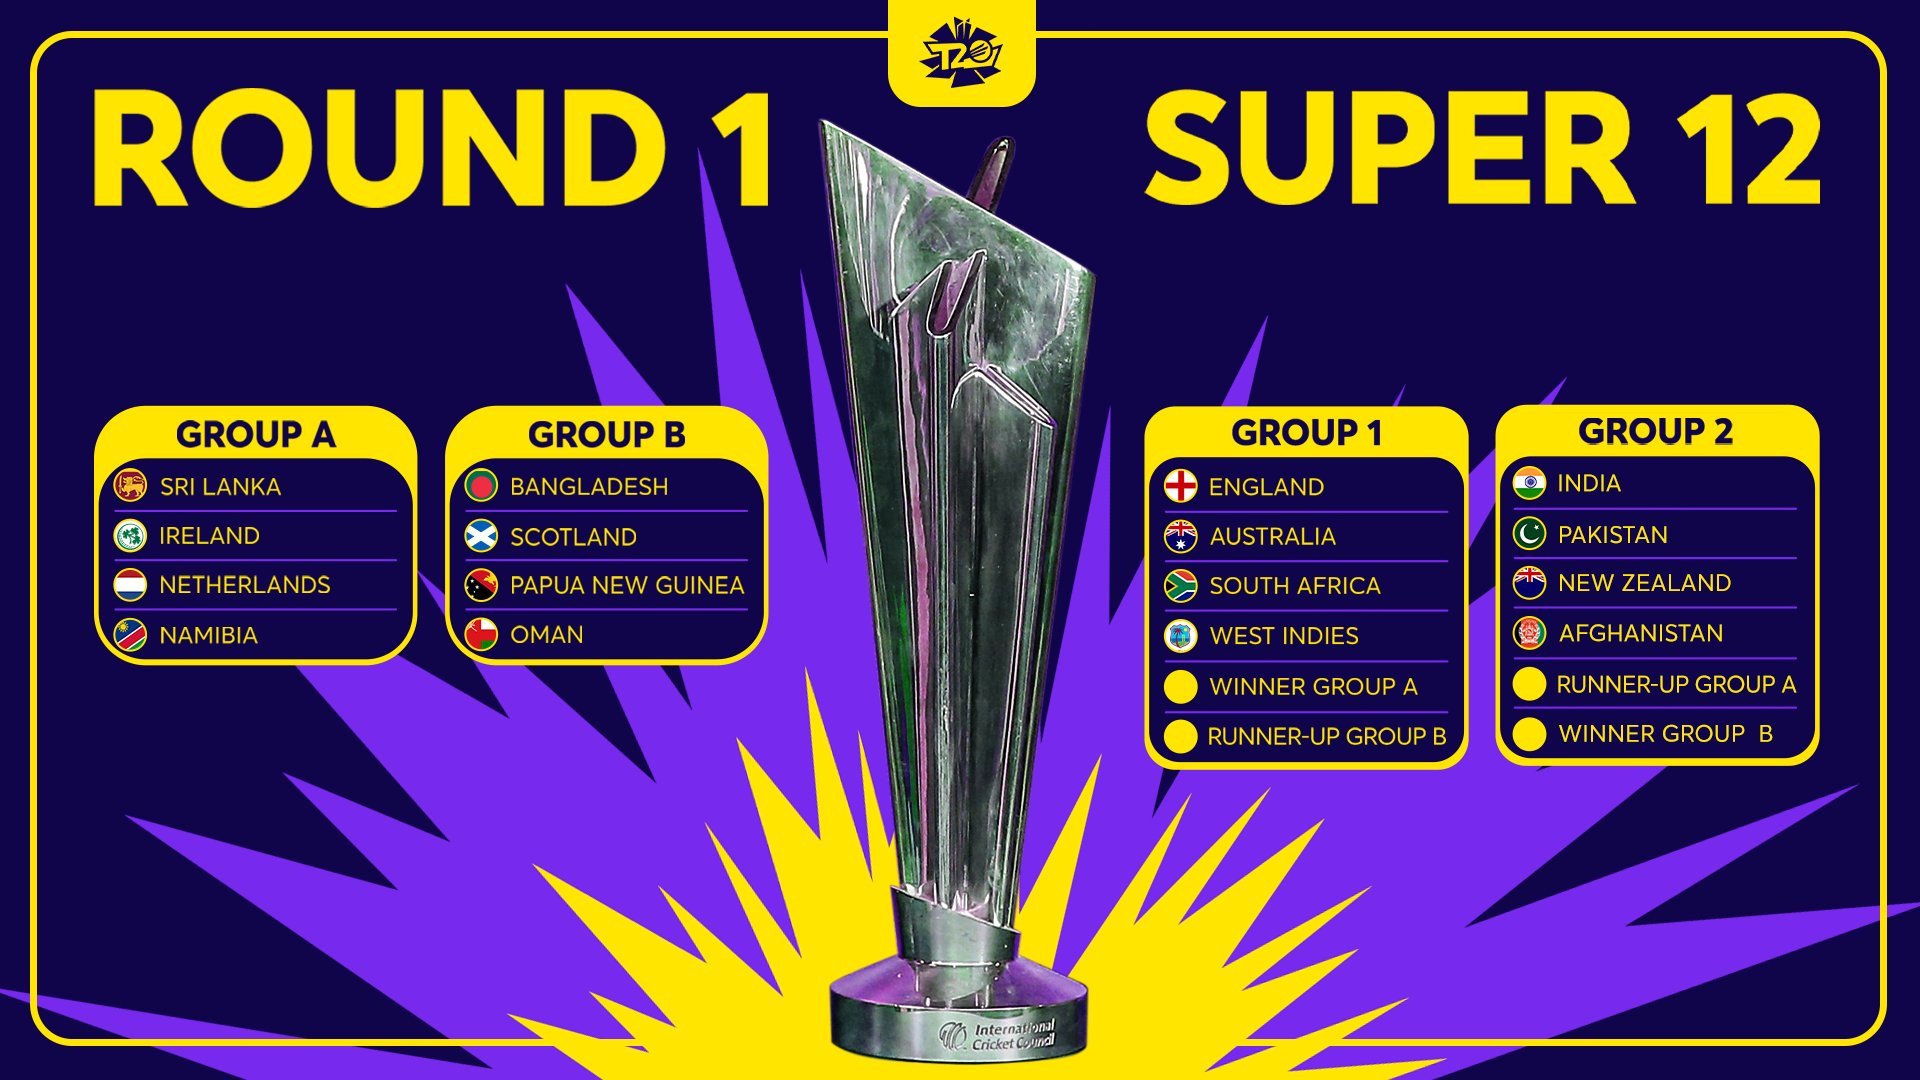 Eight countries have automatically qualified for the Super 12 ©ICC